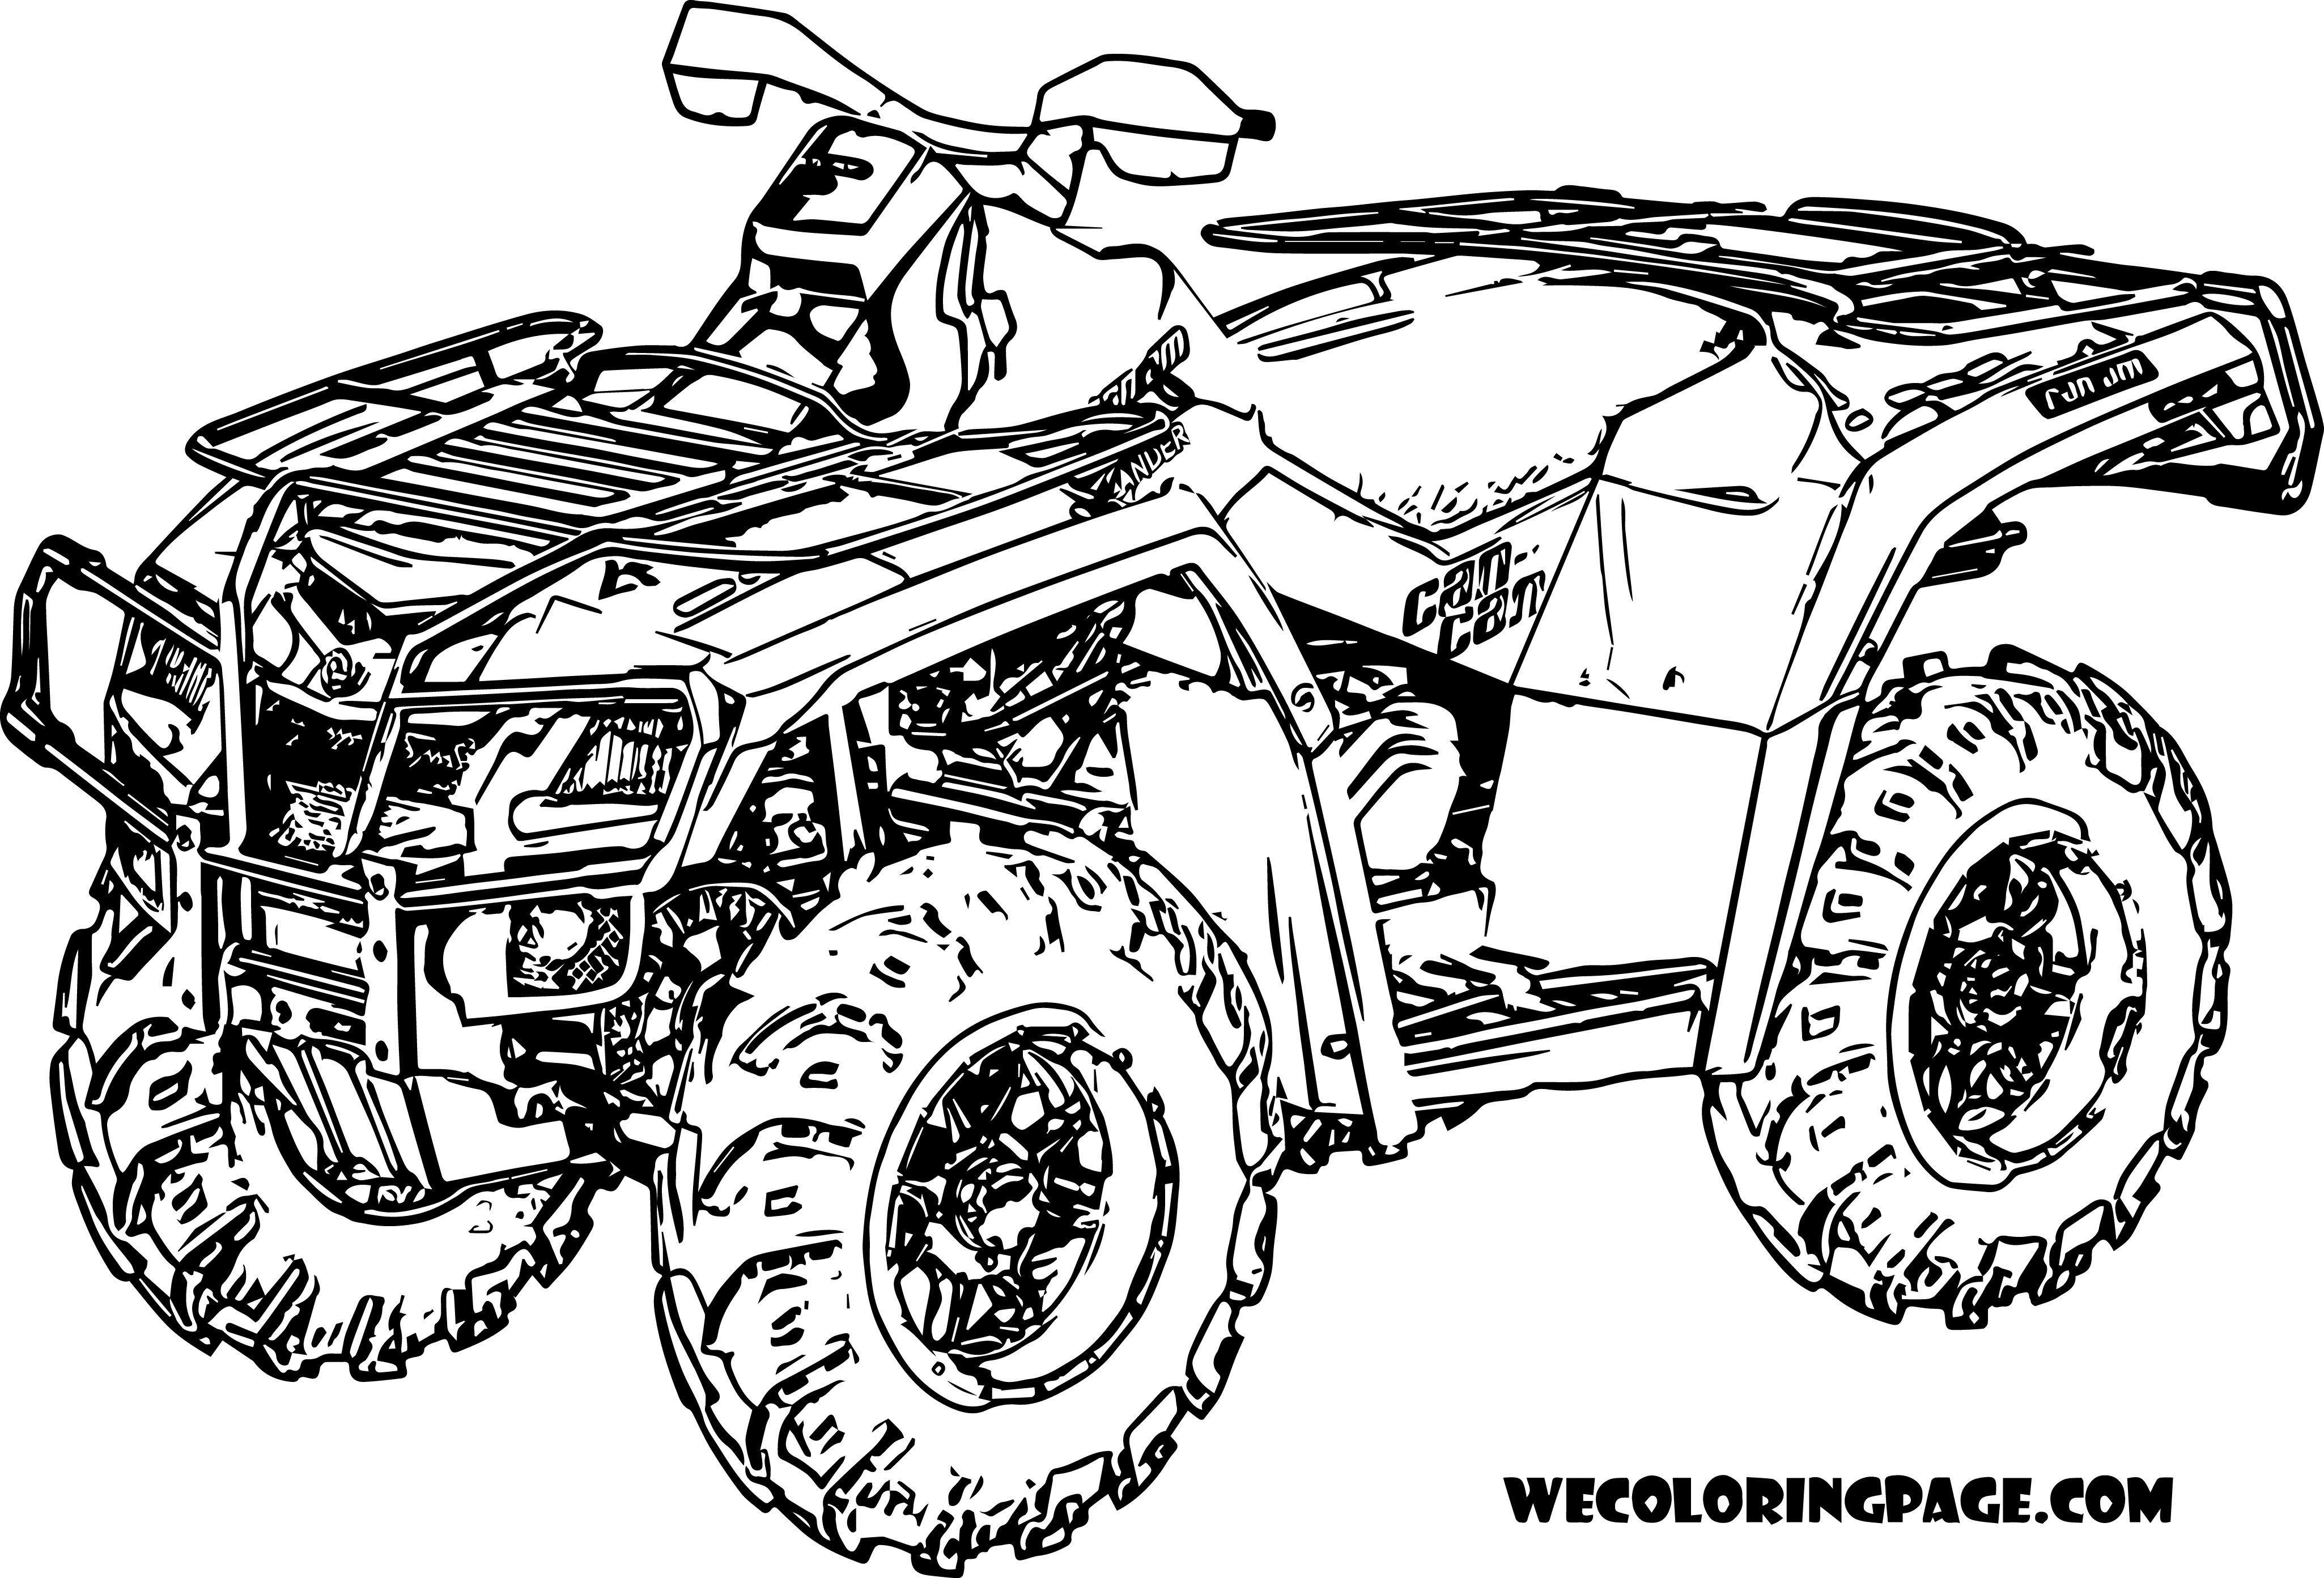 2007 Suzuki King Quad 700 Wiring Diagram further Jeux De Dessin A Colorier De Quad in addition 121 Boite De Vitesse Tgb 400425500525550 likewise Yamaha Grizzly 350 Wiring Diagram further Dirt Bike Coloring. on polaris quad